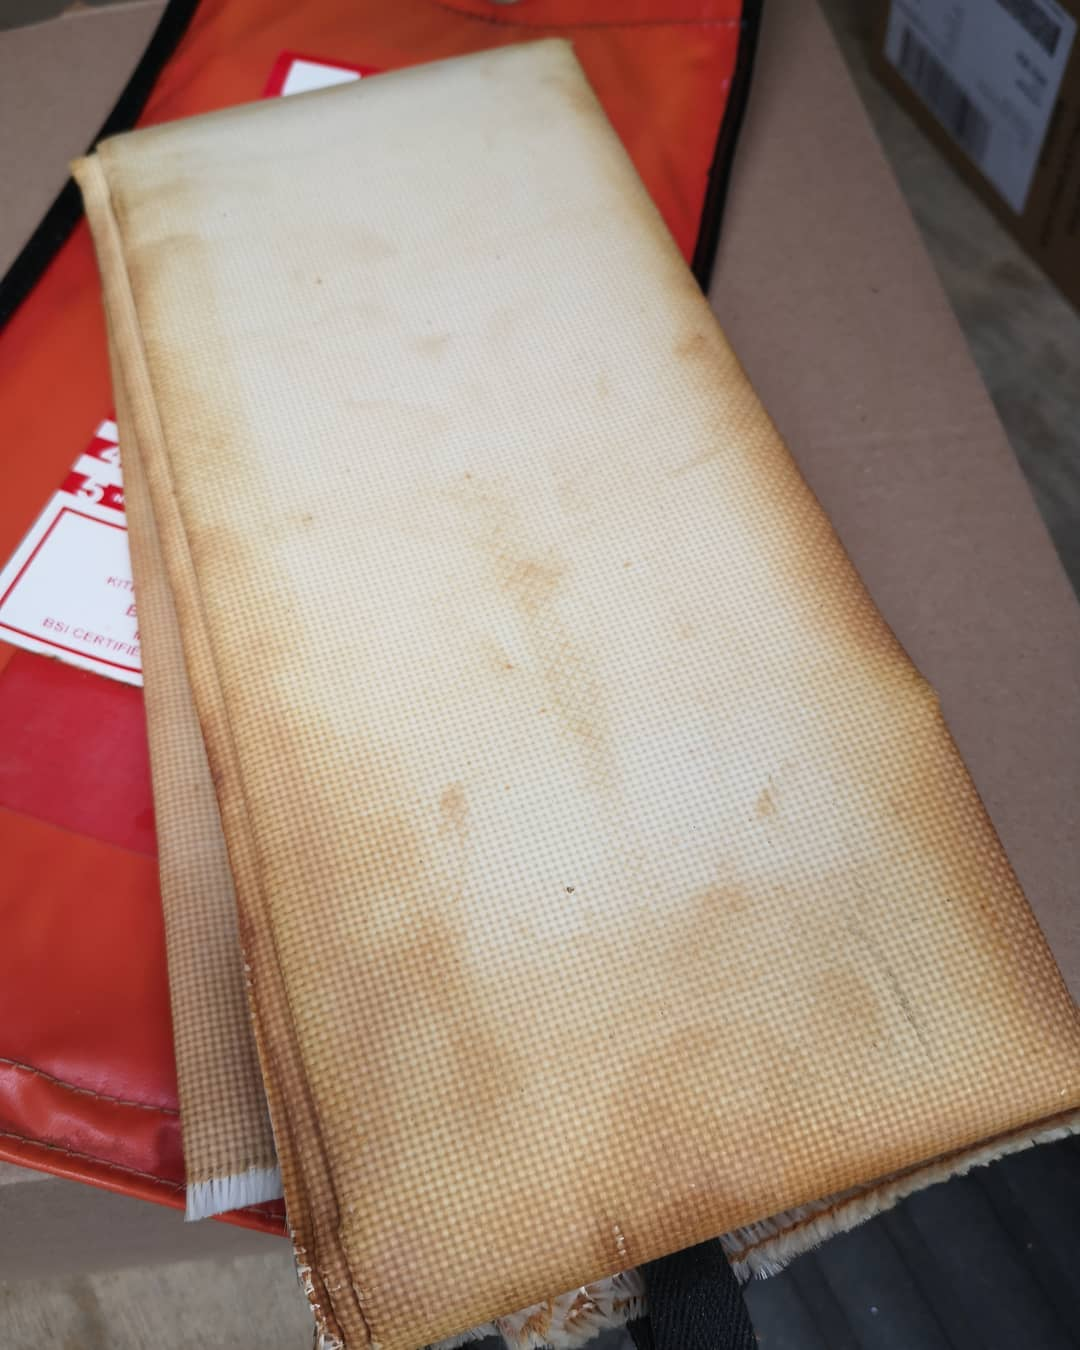 Old Condemned Fire Blanket